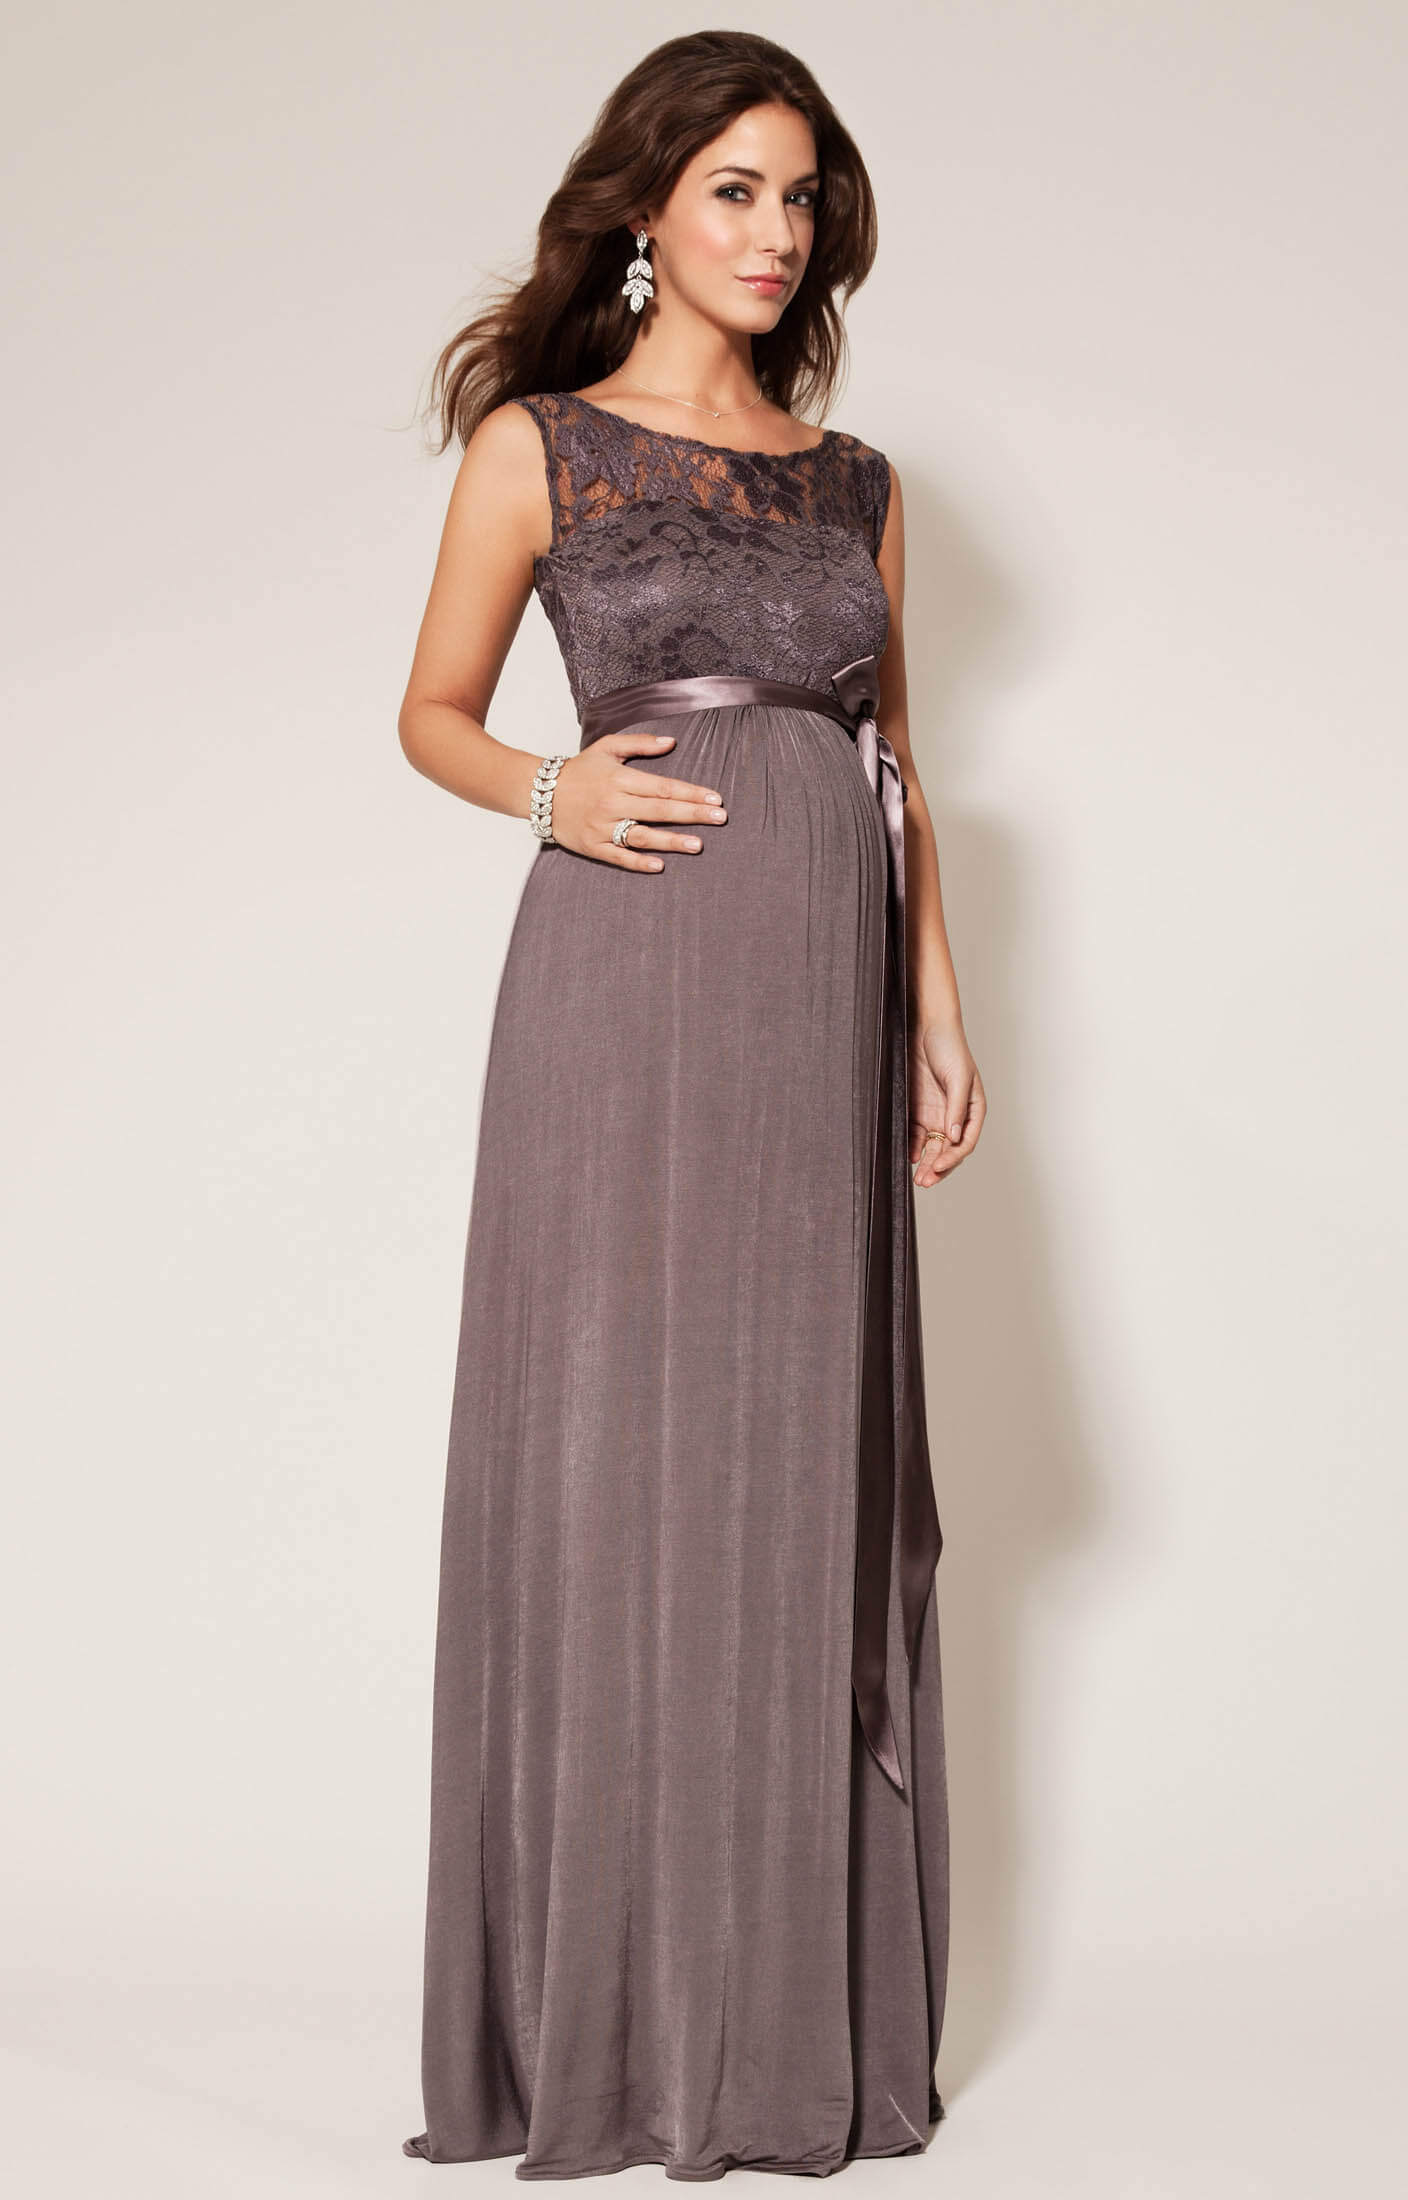 Valencia Maternity Gown Long Charcoal - Maternity Wedding Dresses ...